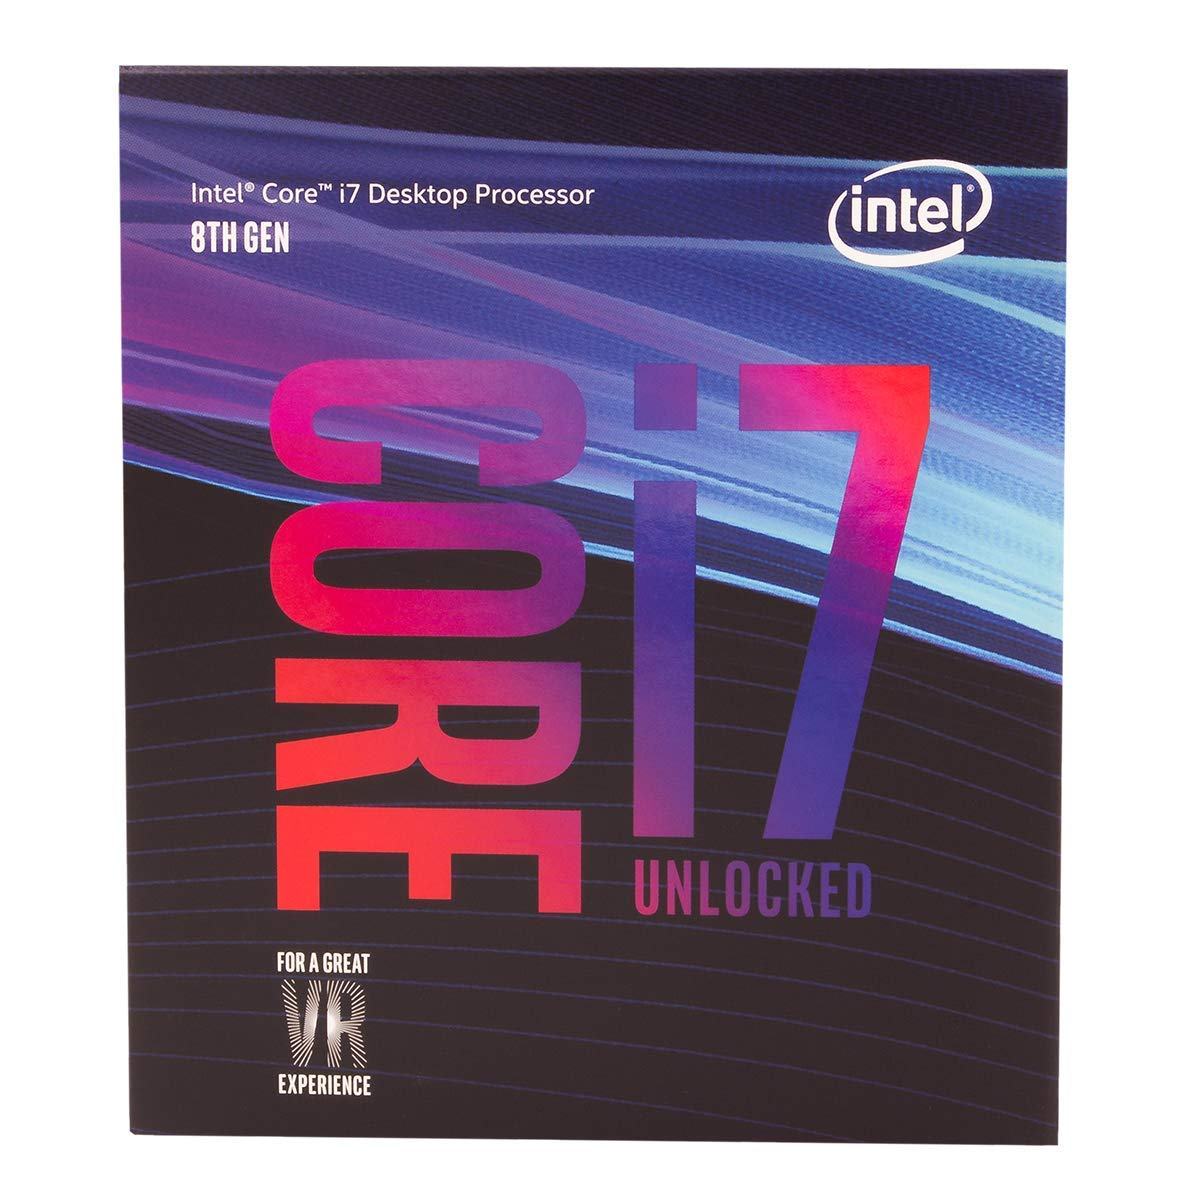 Intel Core i7-8700K Desktop Processor 6 Cores up to 4 7GHz Turbo Unlocked  LGA1151 300 Series 95W